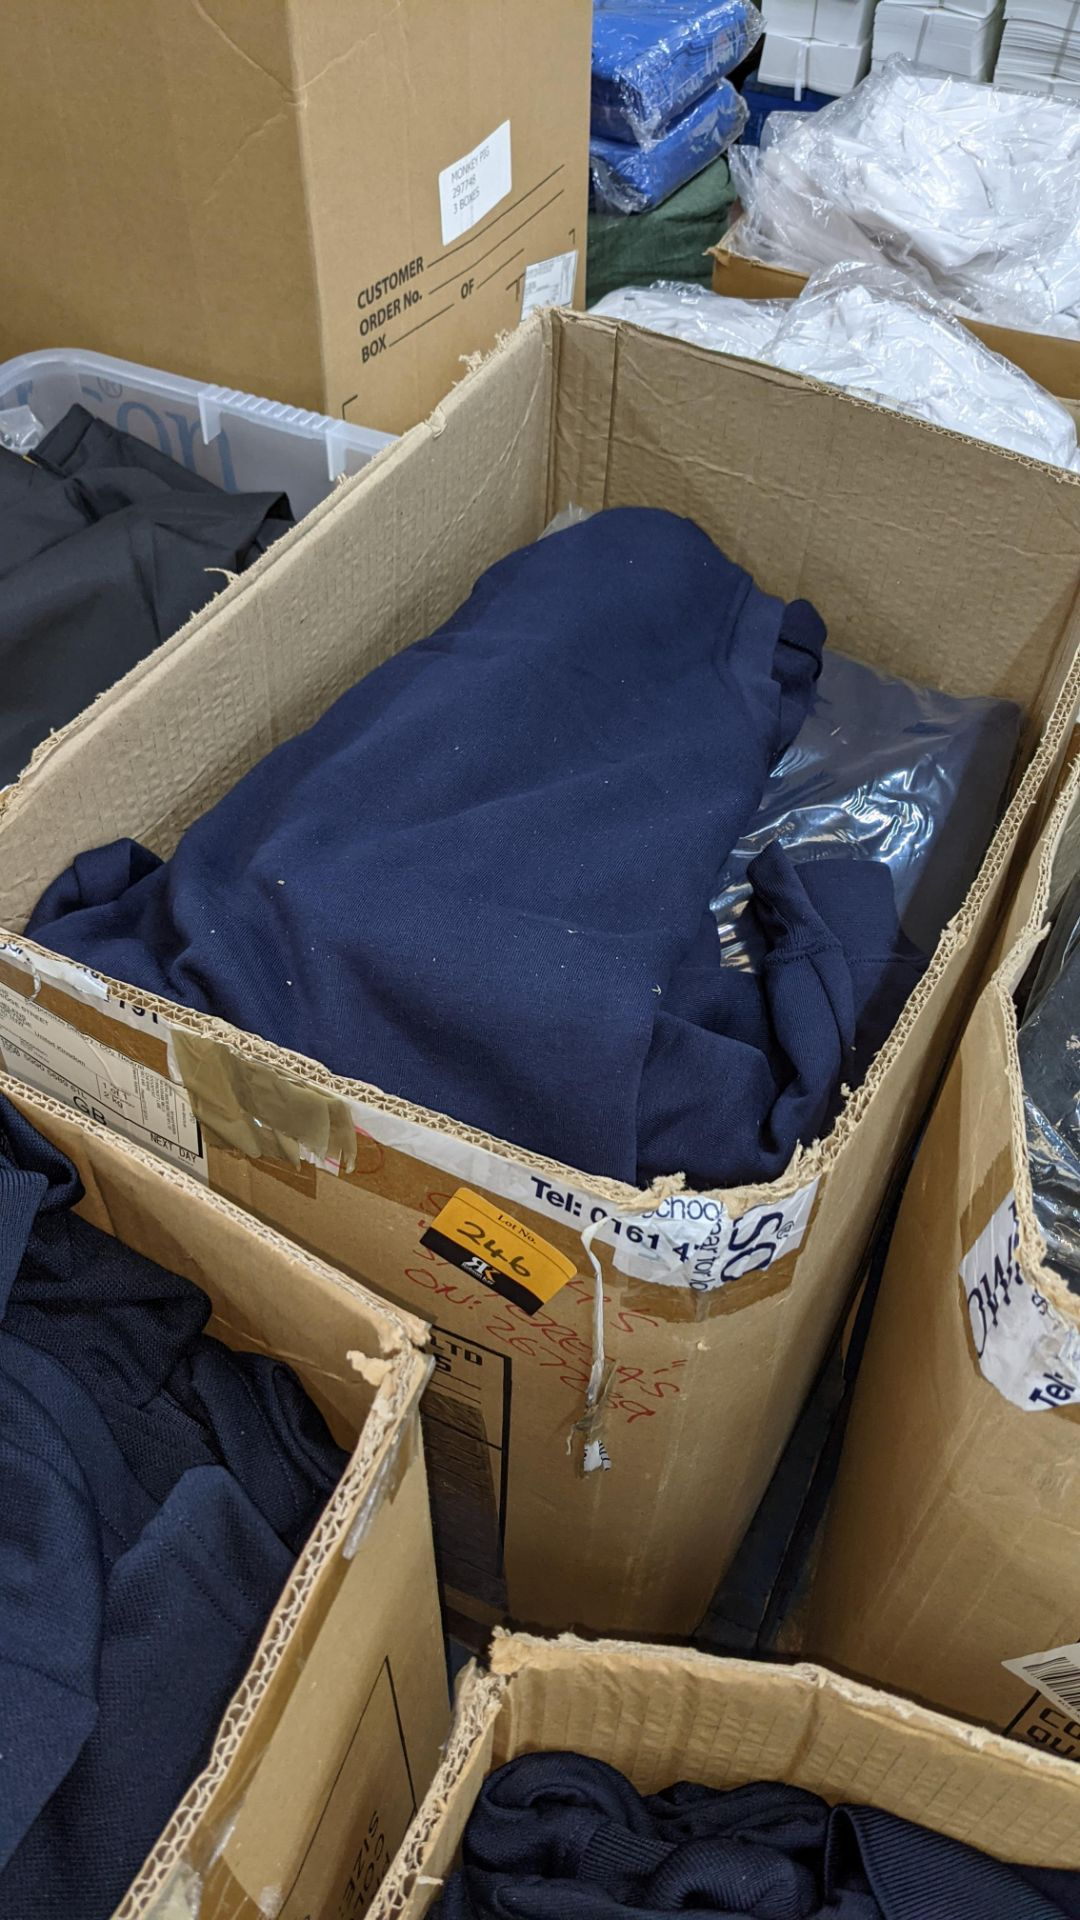 Approx 20 off blue sweatshirts - 1 large box - Image 2 of 5